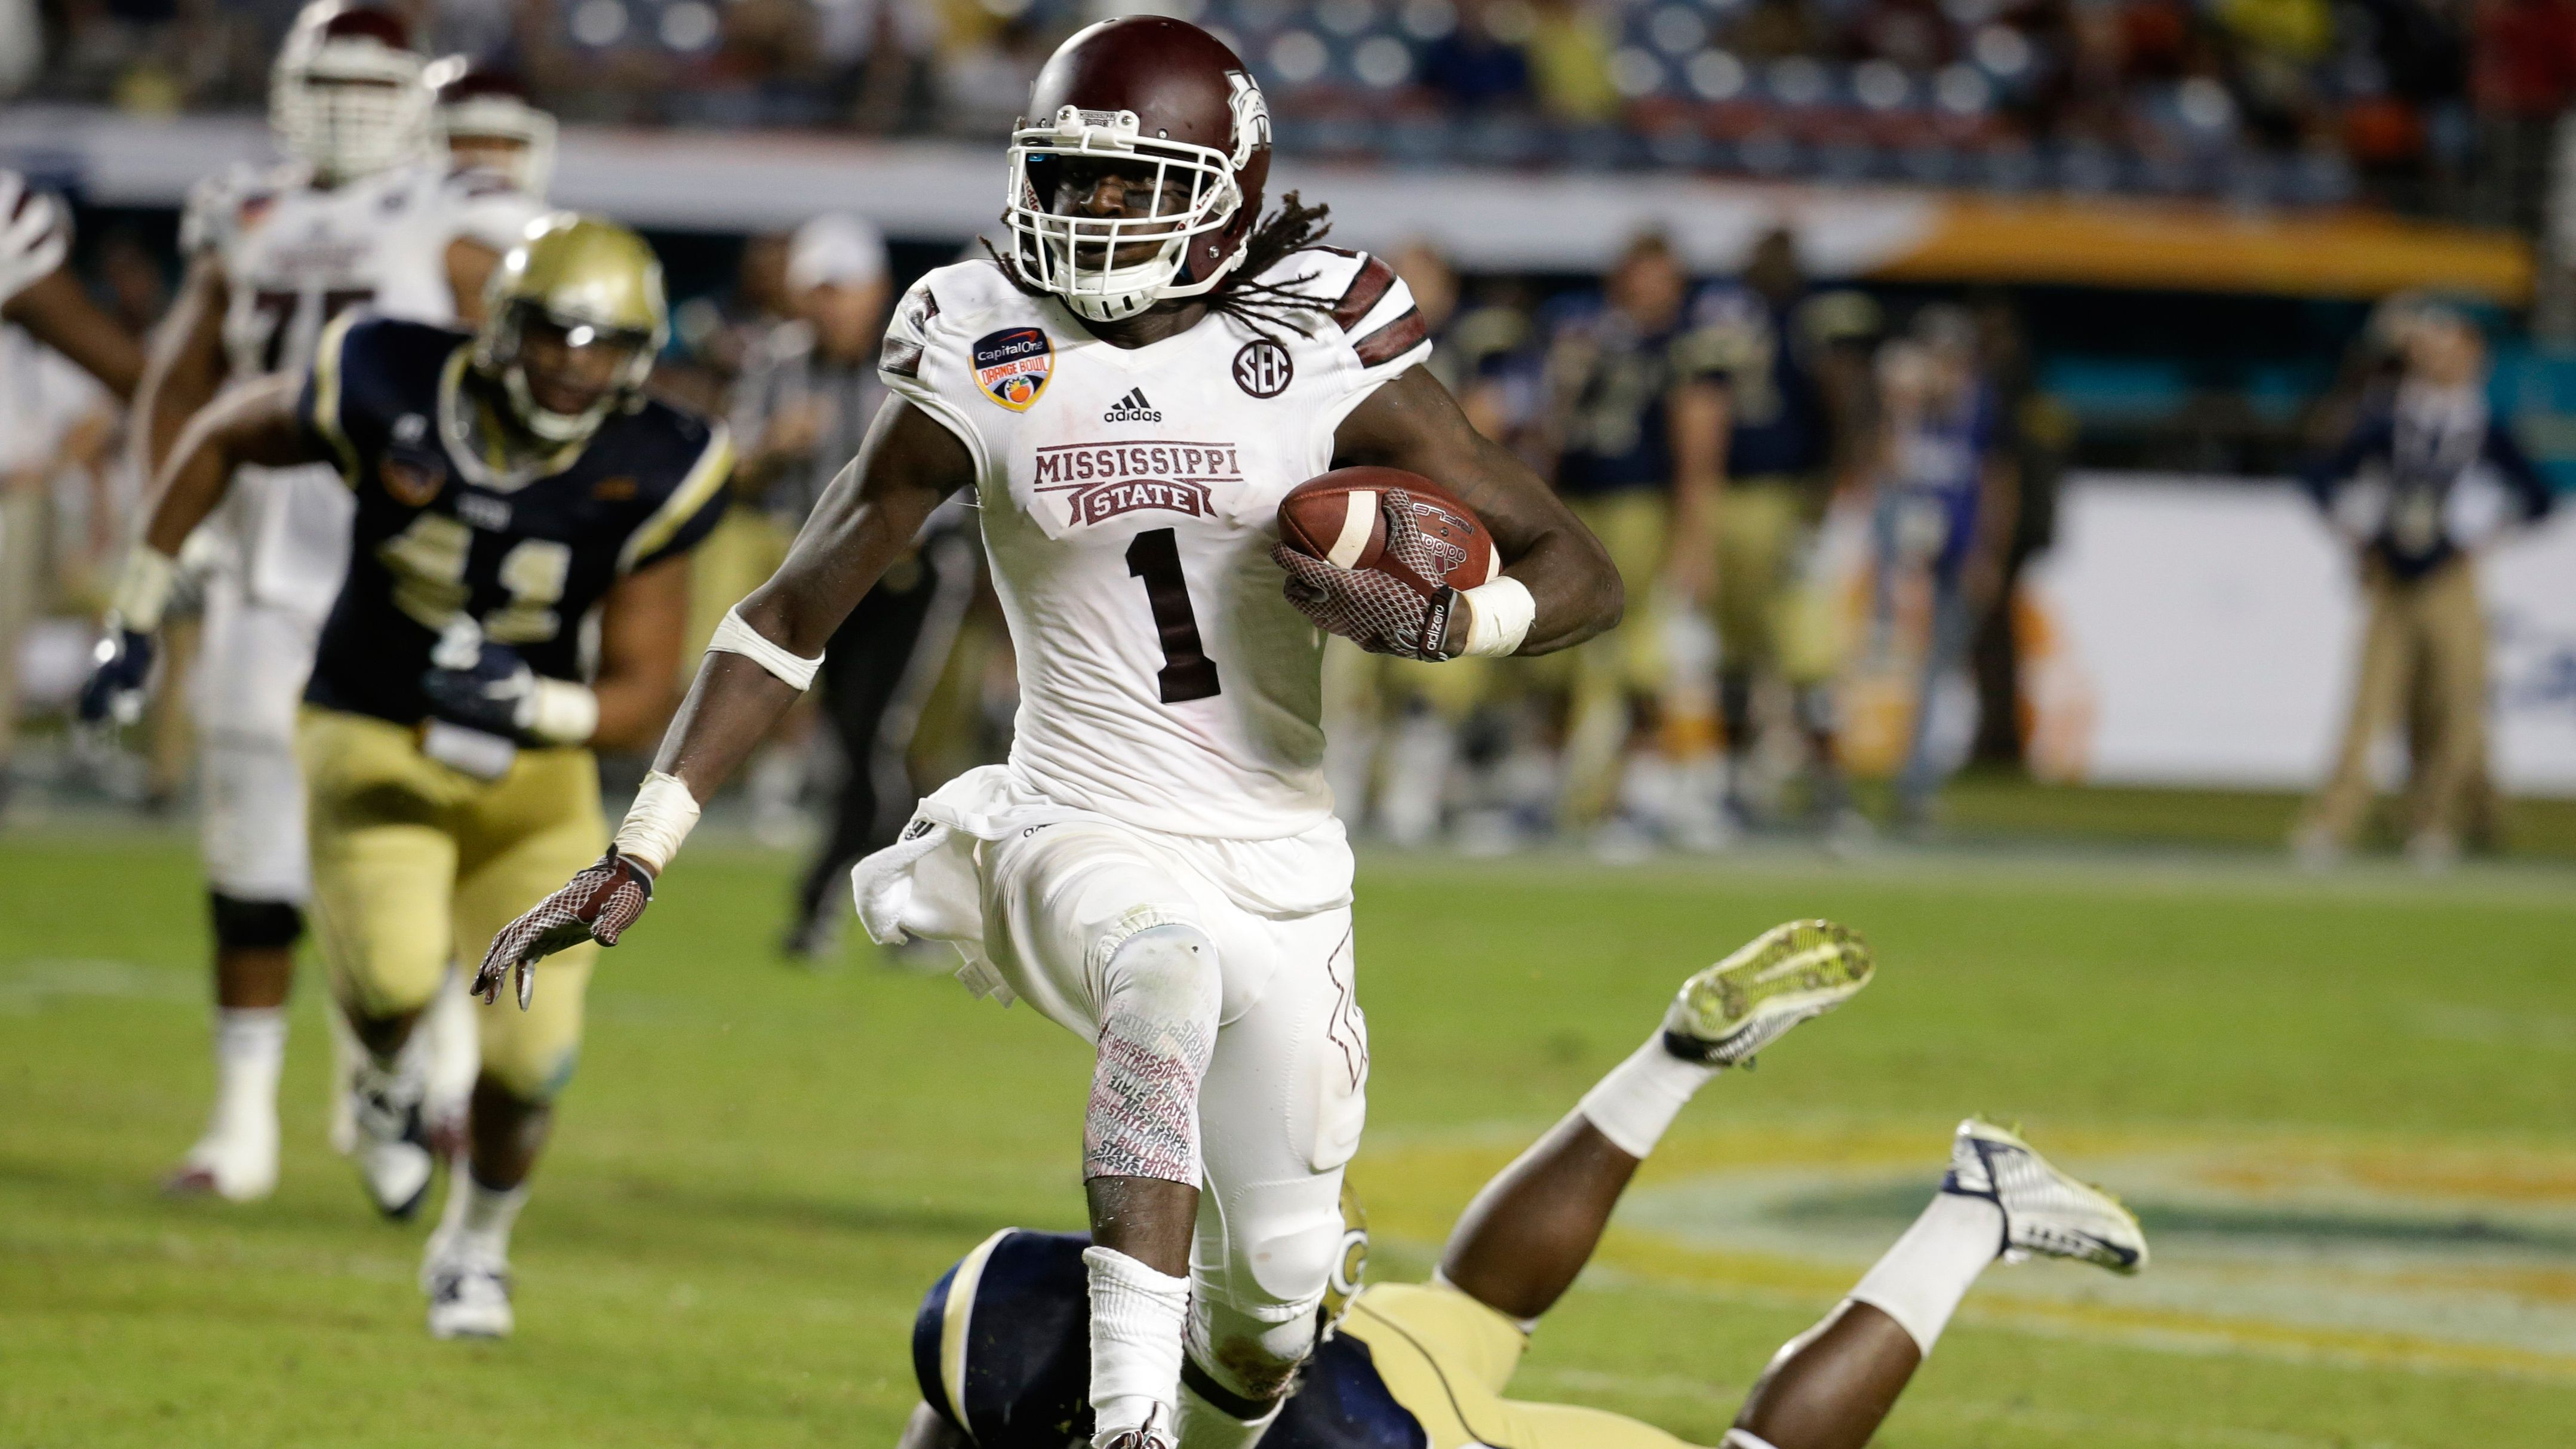 Raised level of expectations for MSU